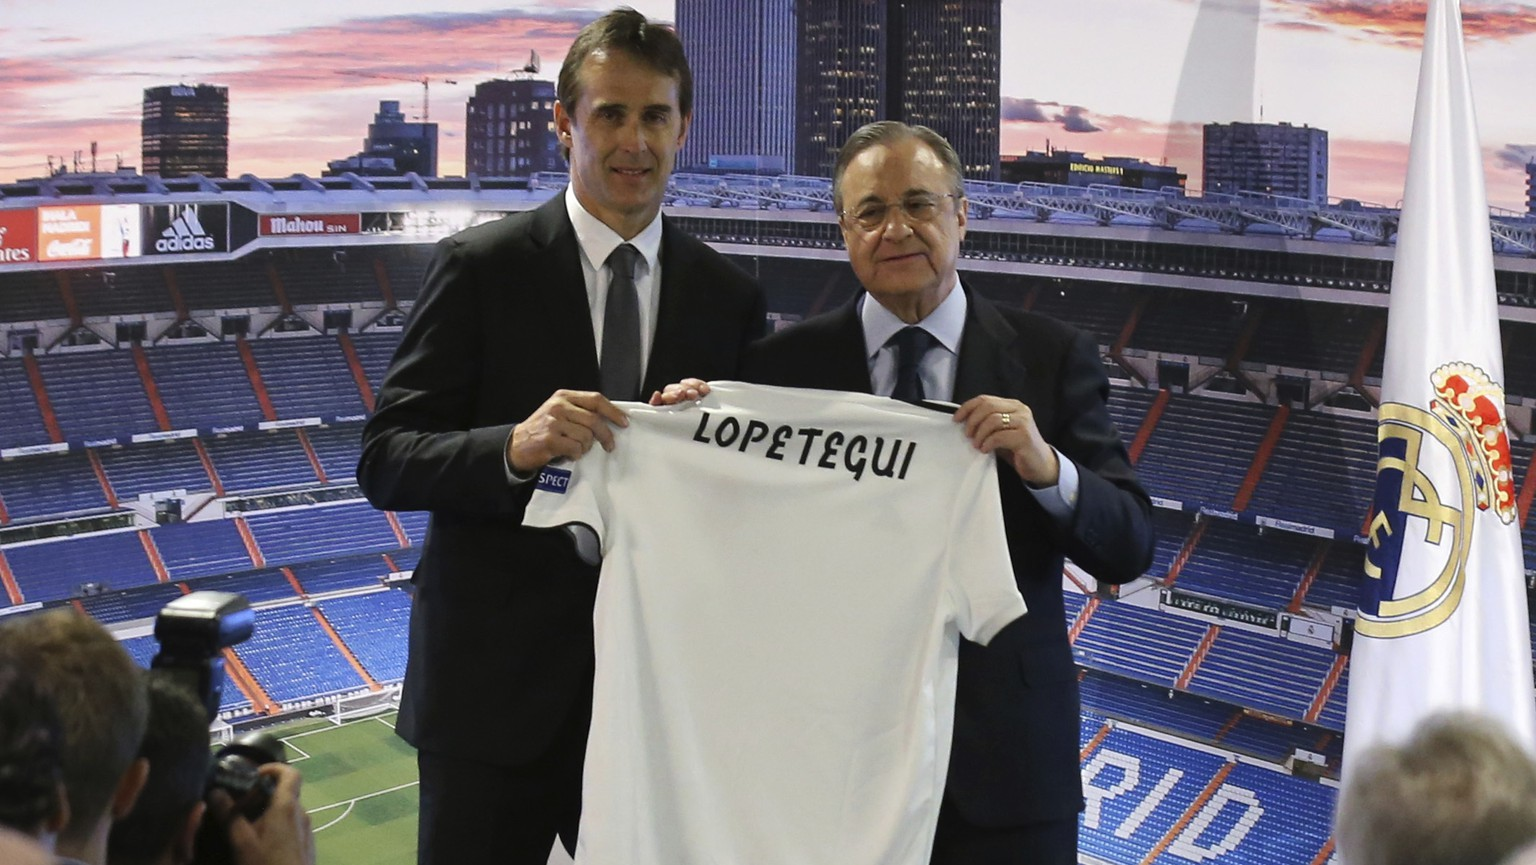 President of Real Madrid, Florentino Perez , centre right and newly appointed Real Madrid coach Julen Lopetegui pose for a photo, during a press conference in Madrid, Thursday, June 14, 2018. Lopetegui was the Spanish National team's coach but was fired on Wednesday, two days before Spain's opening match against Portugal, because he had accepted the job to coach Real Madrid next season. (AP Photo/Andrea Comas)